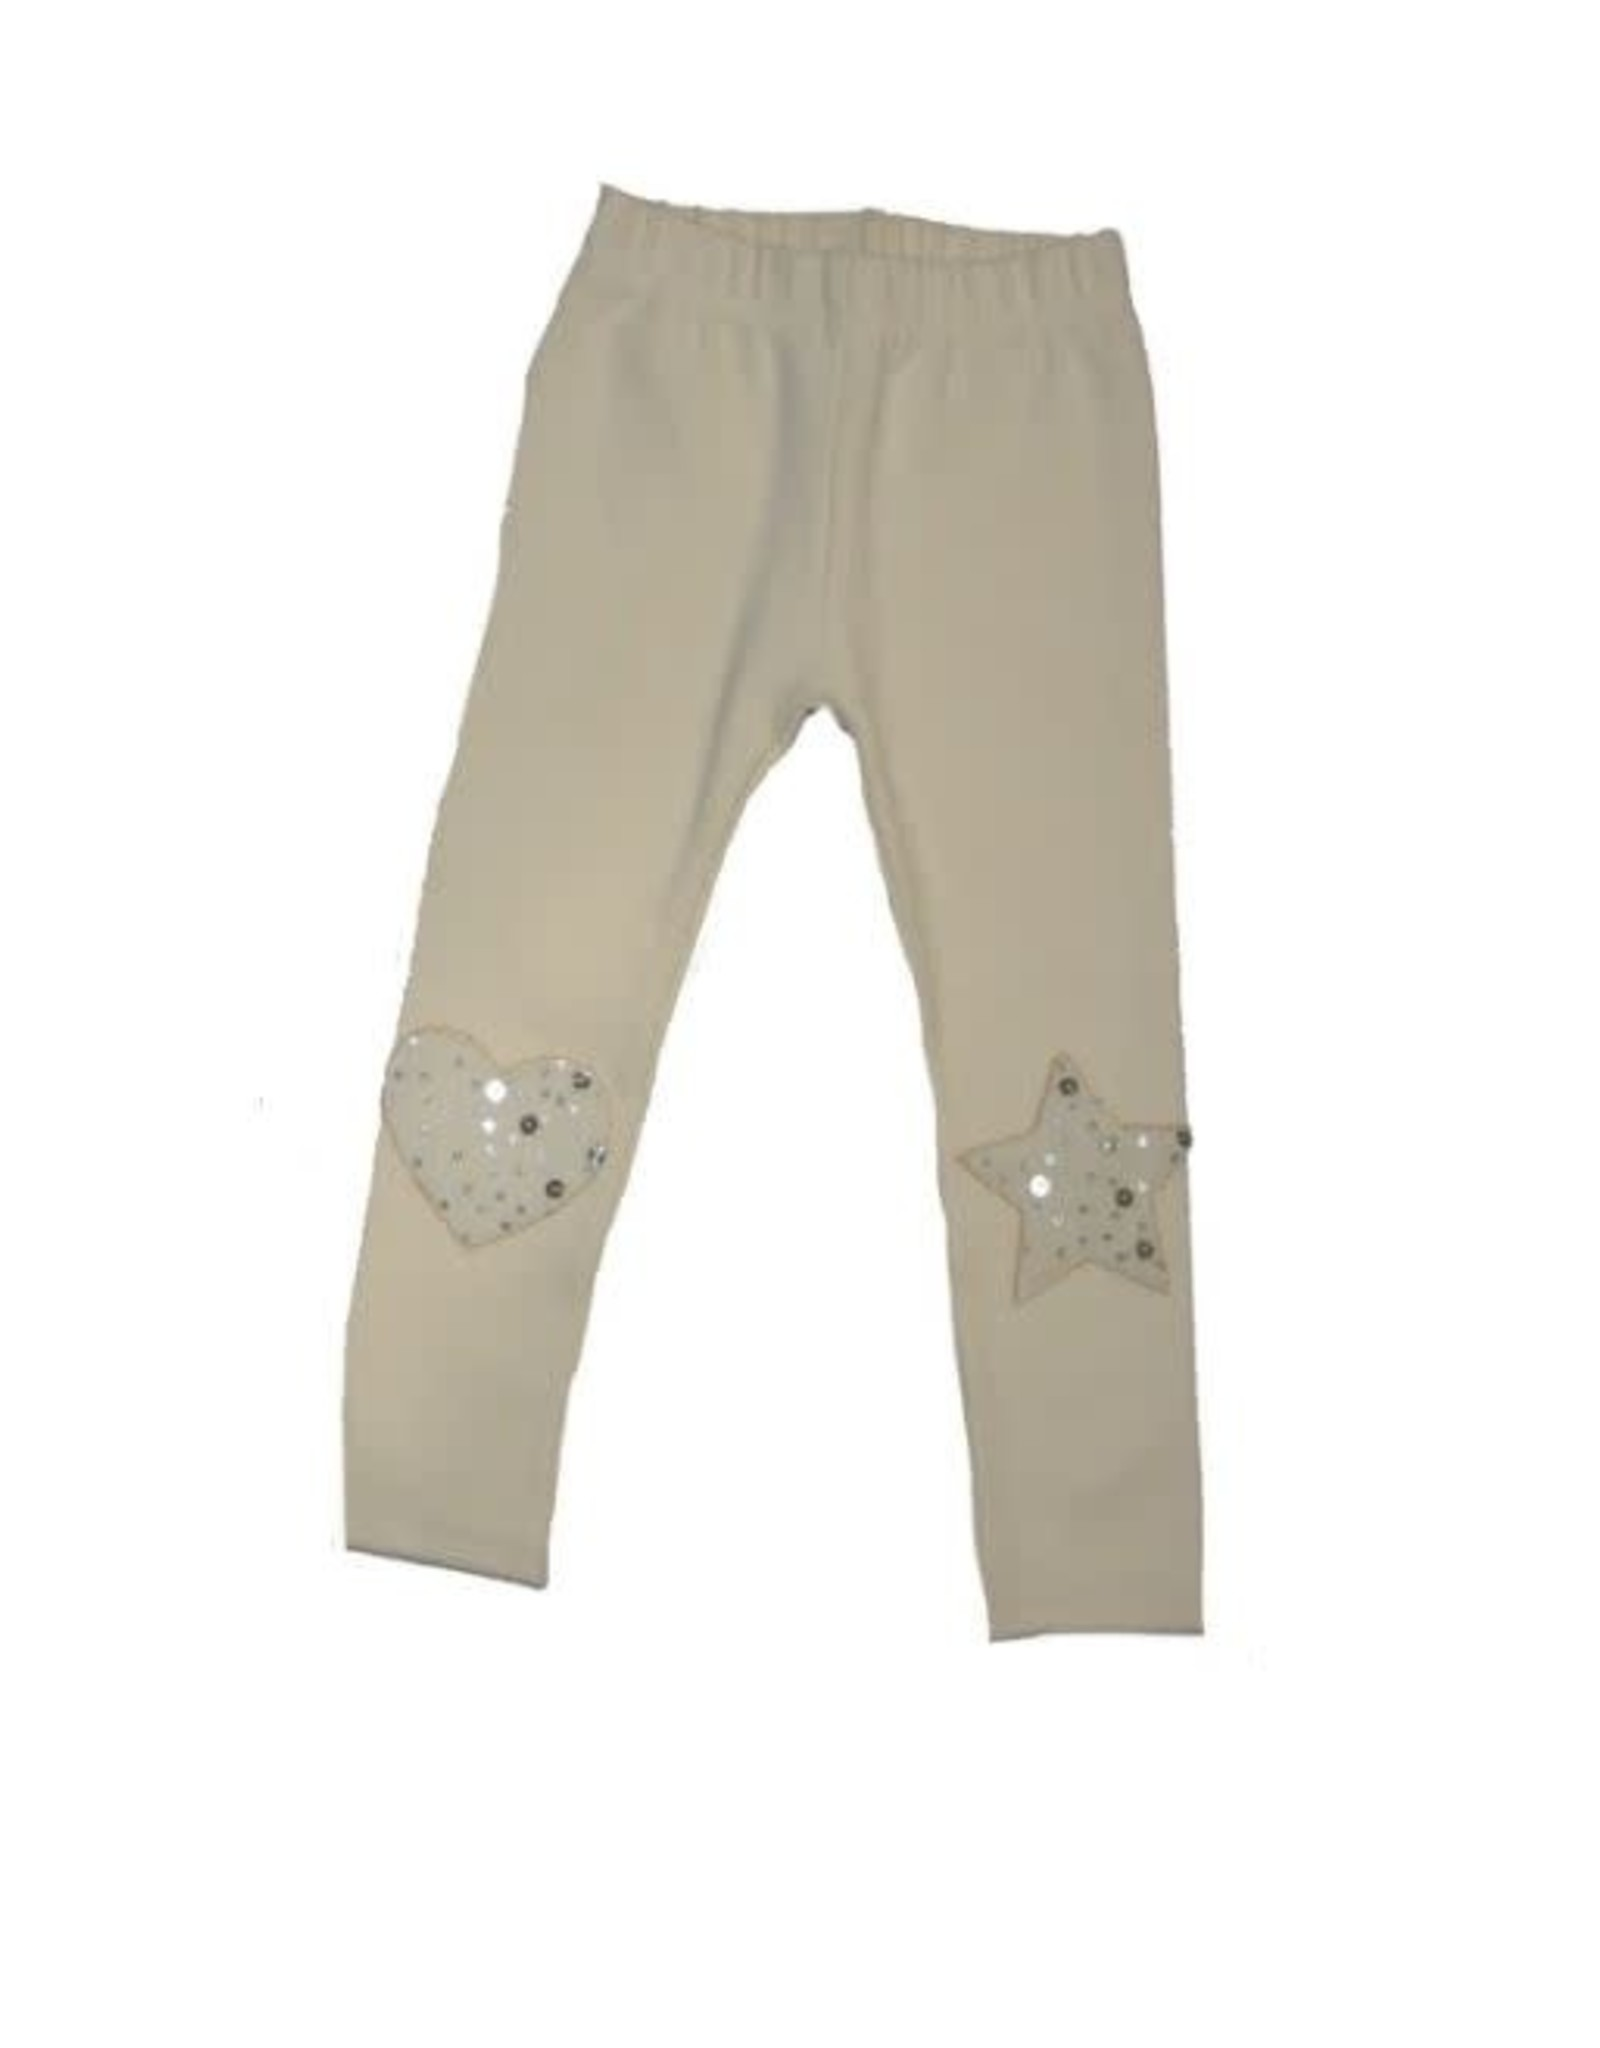 Ciao Milano Embellished Heart Star Pant - Antique White